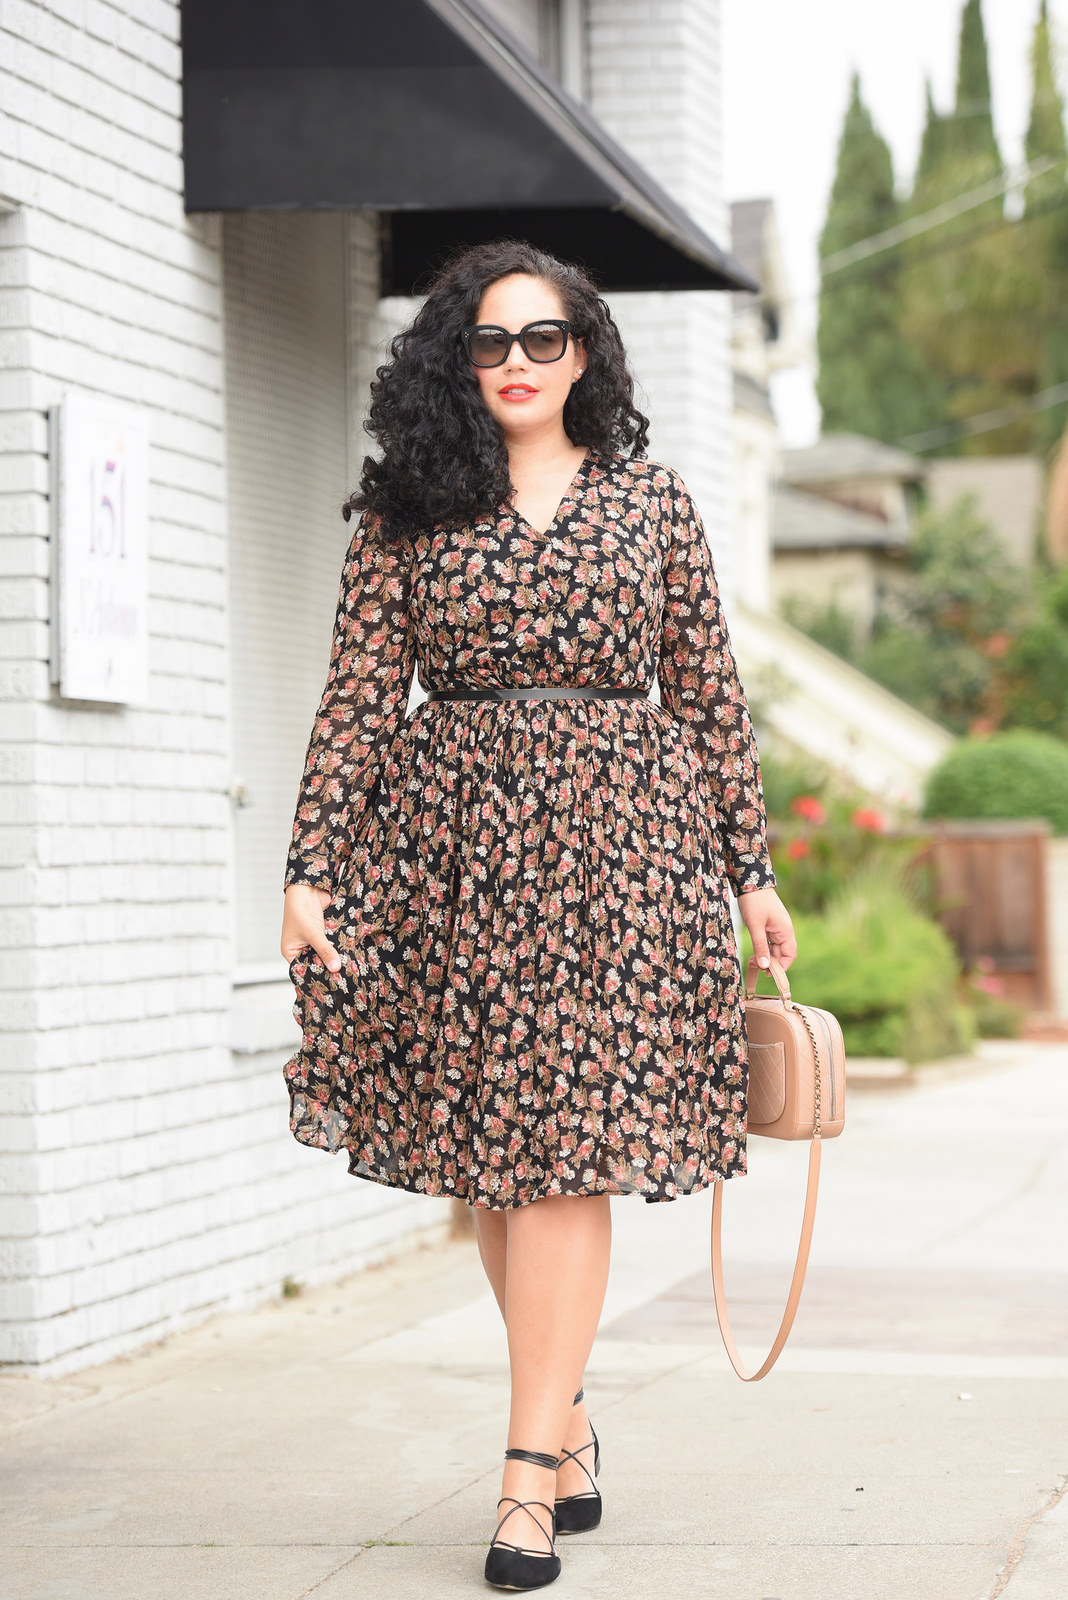 8b5affbbdb5 HOW TO PULL OFF SKIRTS AND DRESSES WITH FLATS via  GirlWithCurves  tips   curvystyle